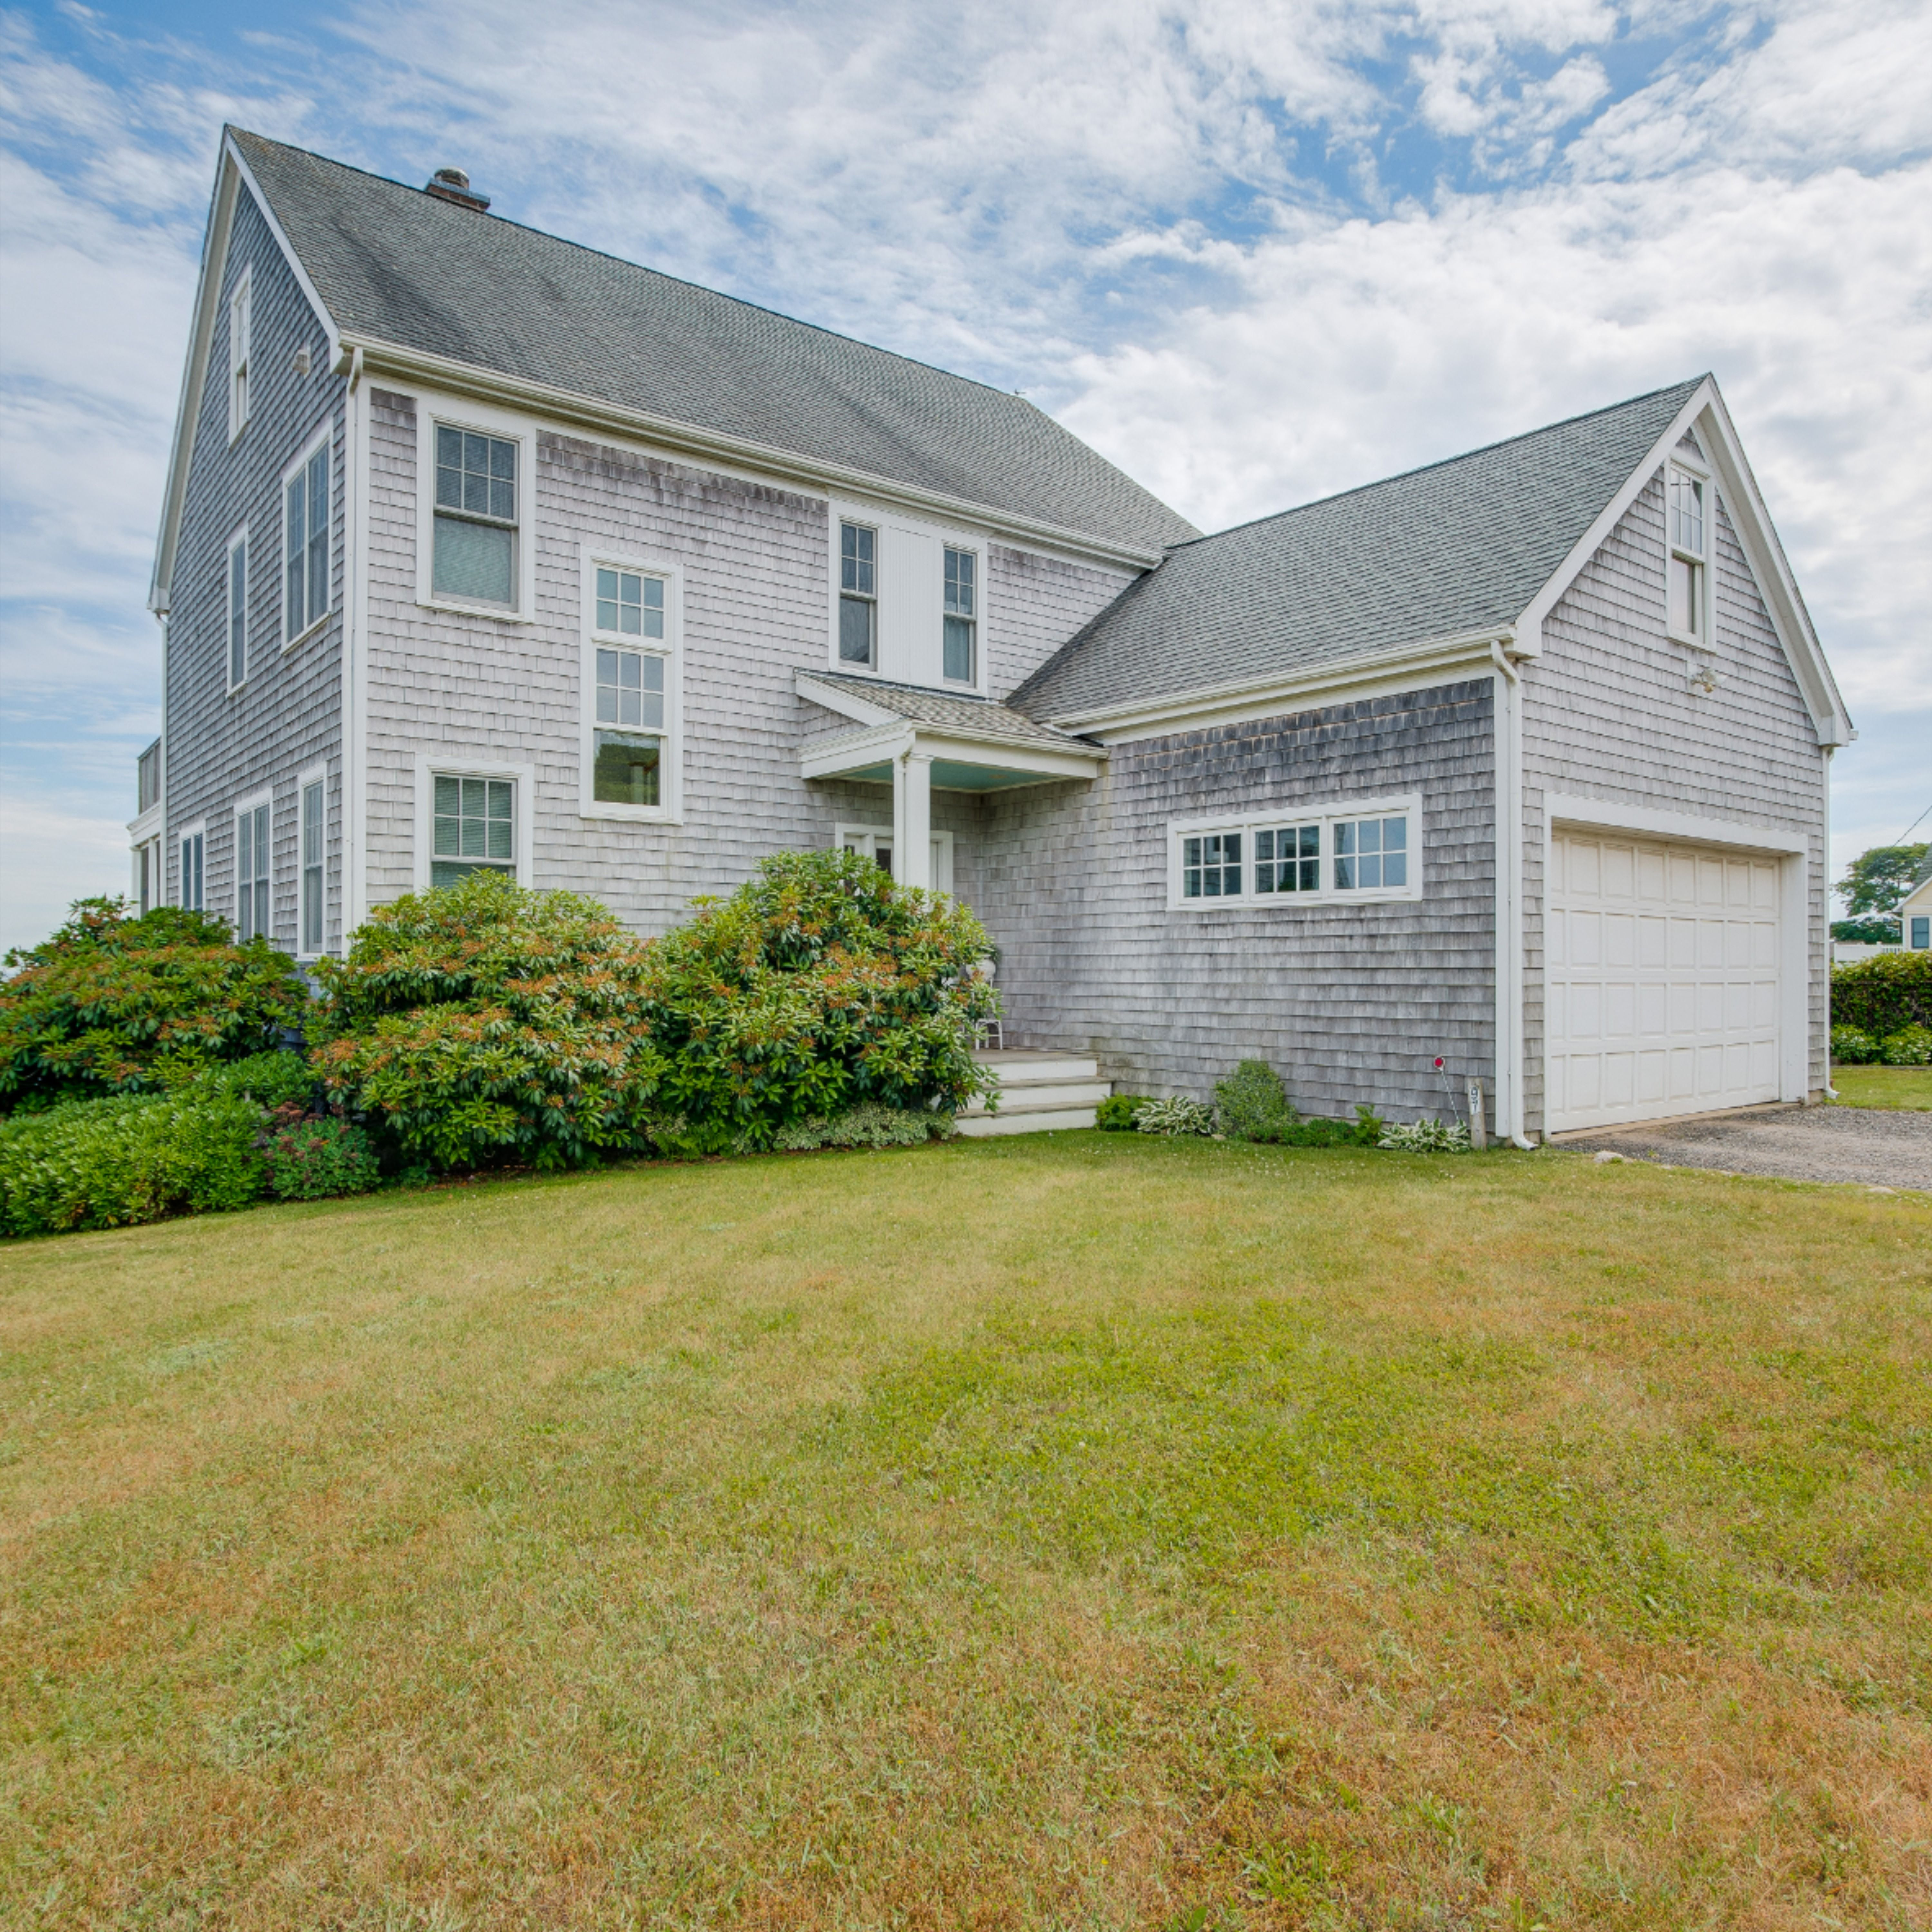 97 Stone Rd, Madison, CT Offered by Edward Hillyer